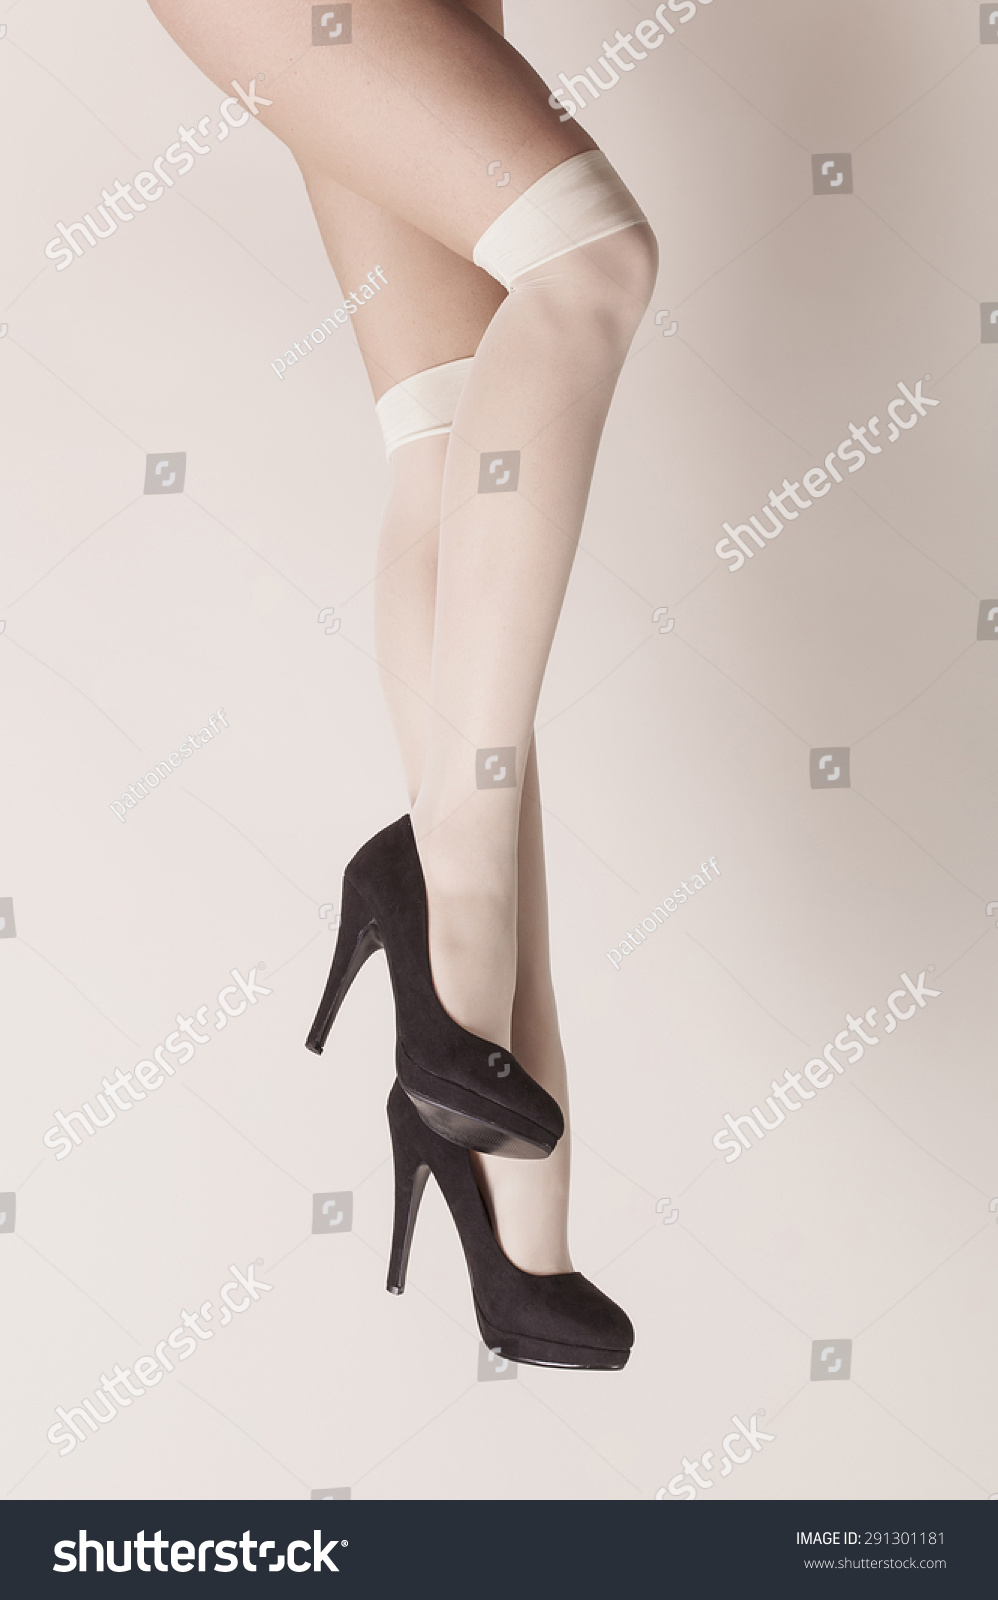 All Sexy legs in stockings and heels helpful information